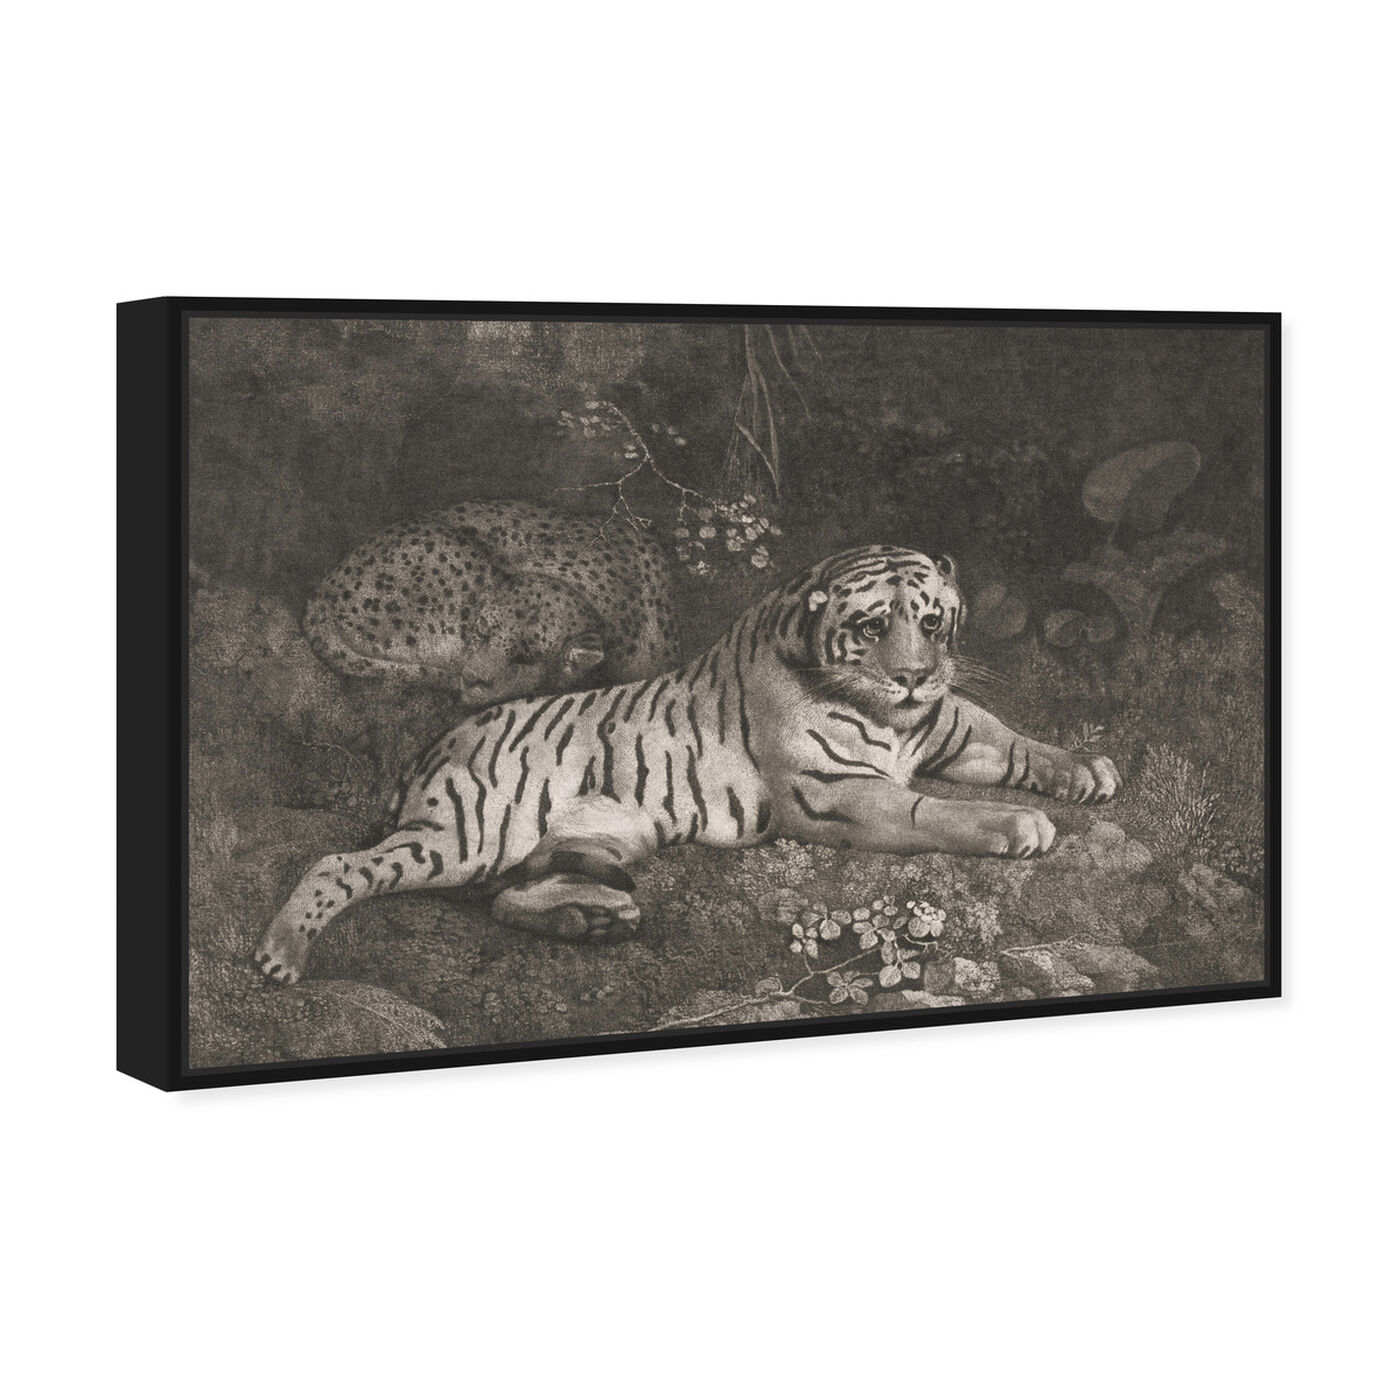 Angled view of G Stubbs - A Tiger Sleeping and a Leopard 1788 featuring animals and felines art.